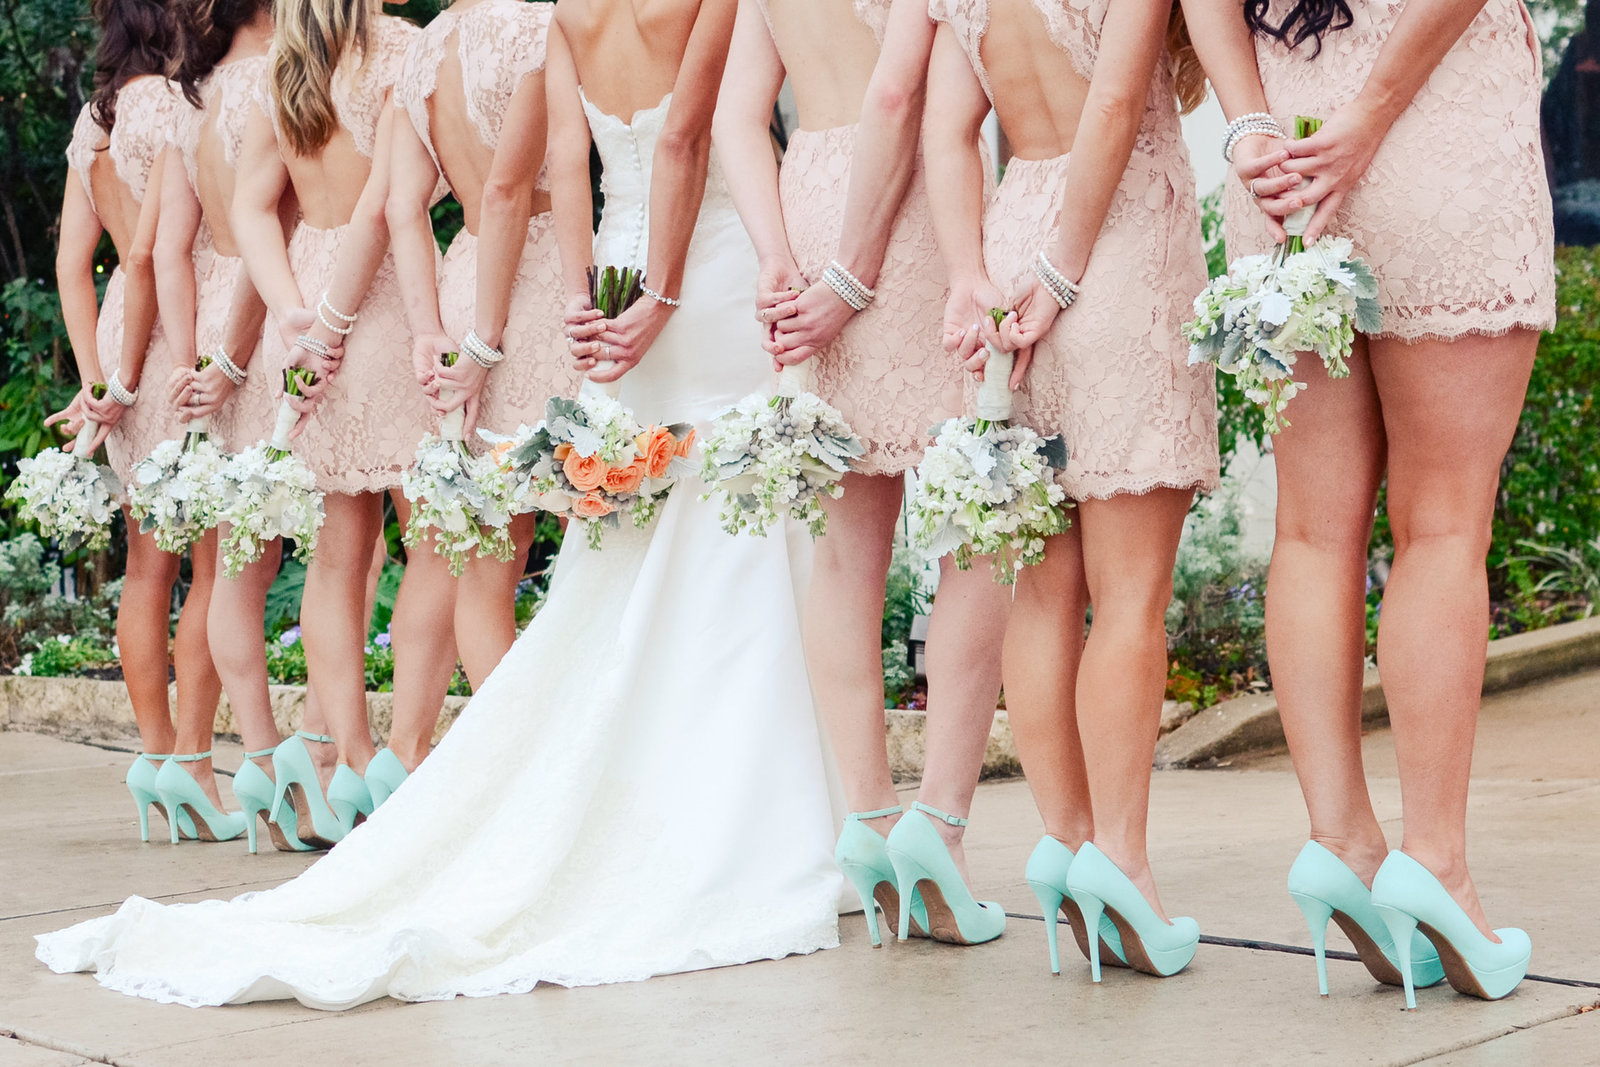 Shoe shot for bridesmaids at The Allan House in Austin, Texas